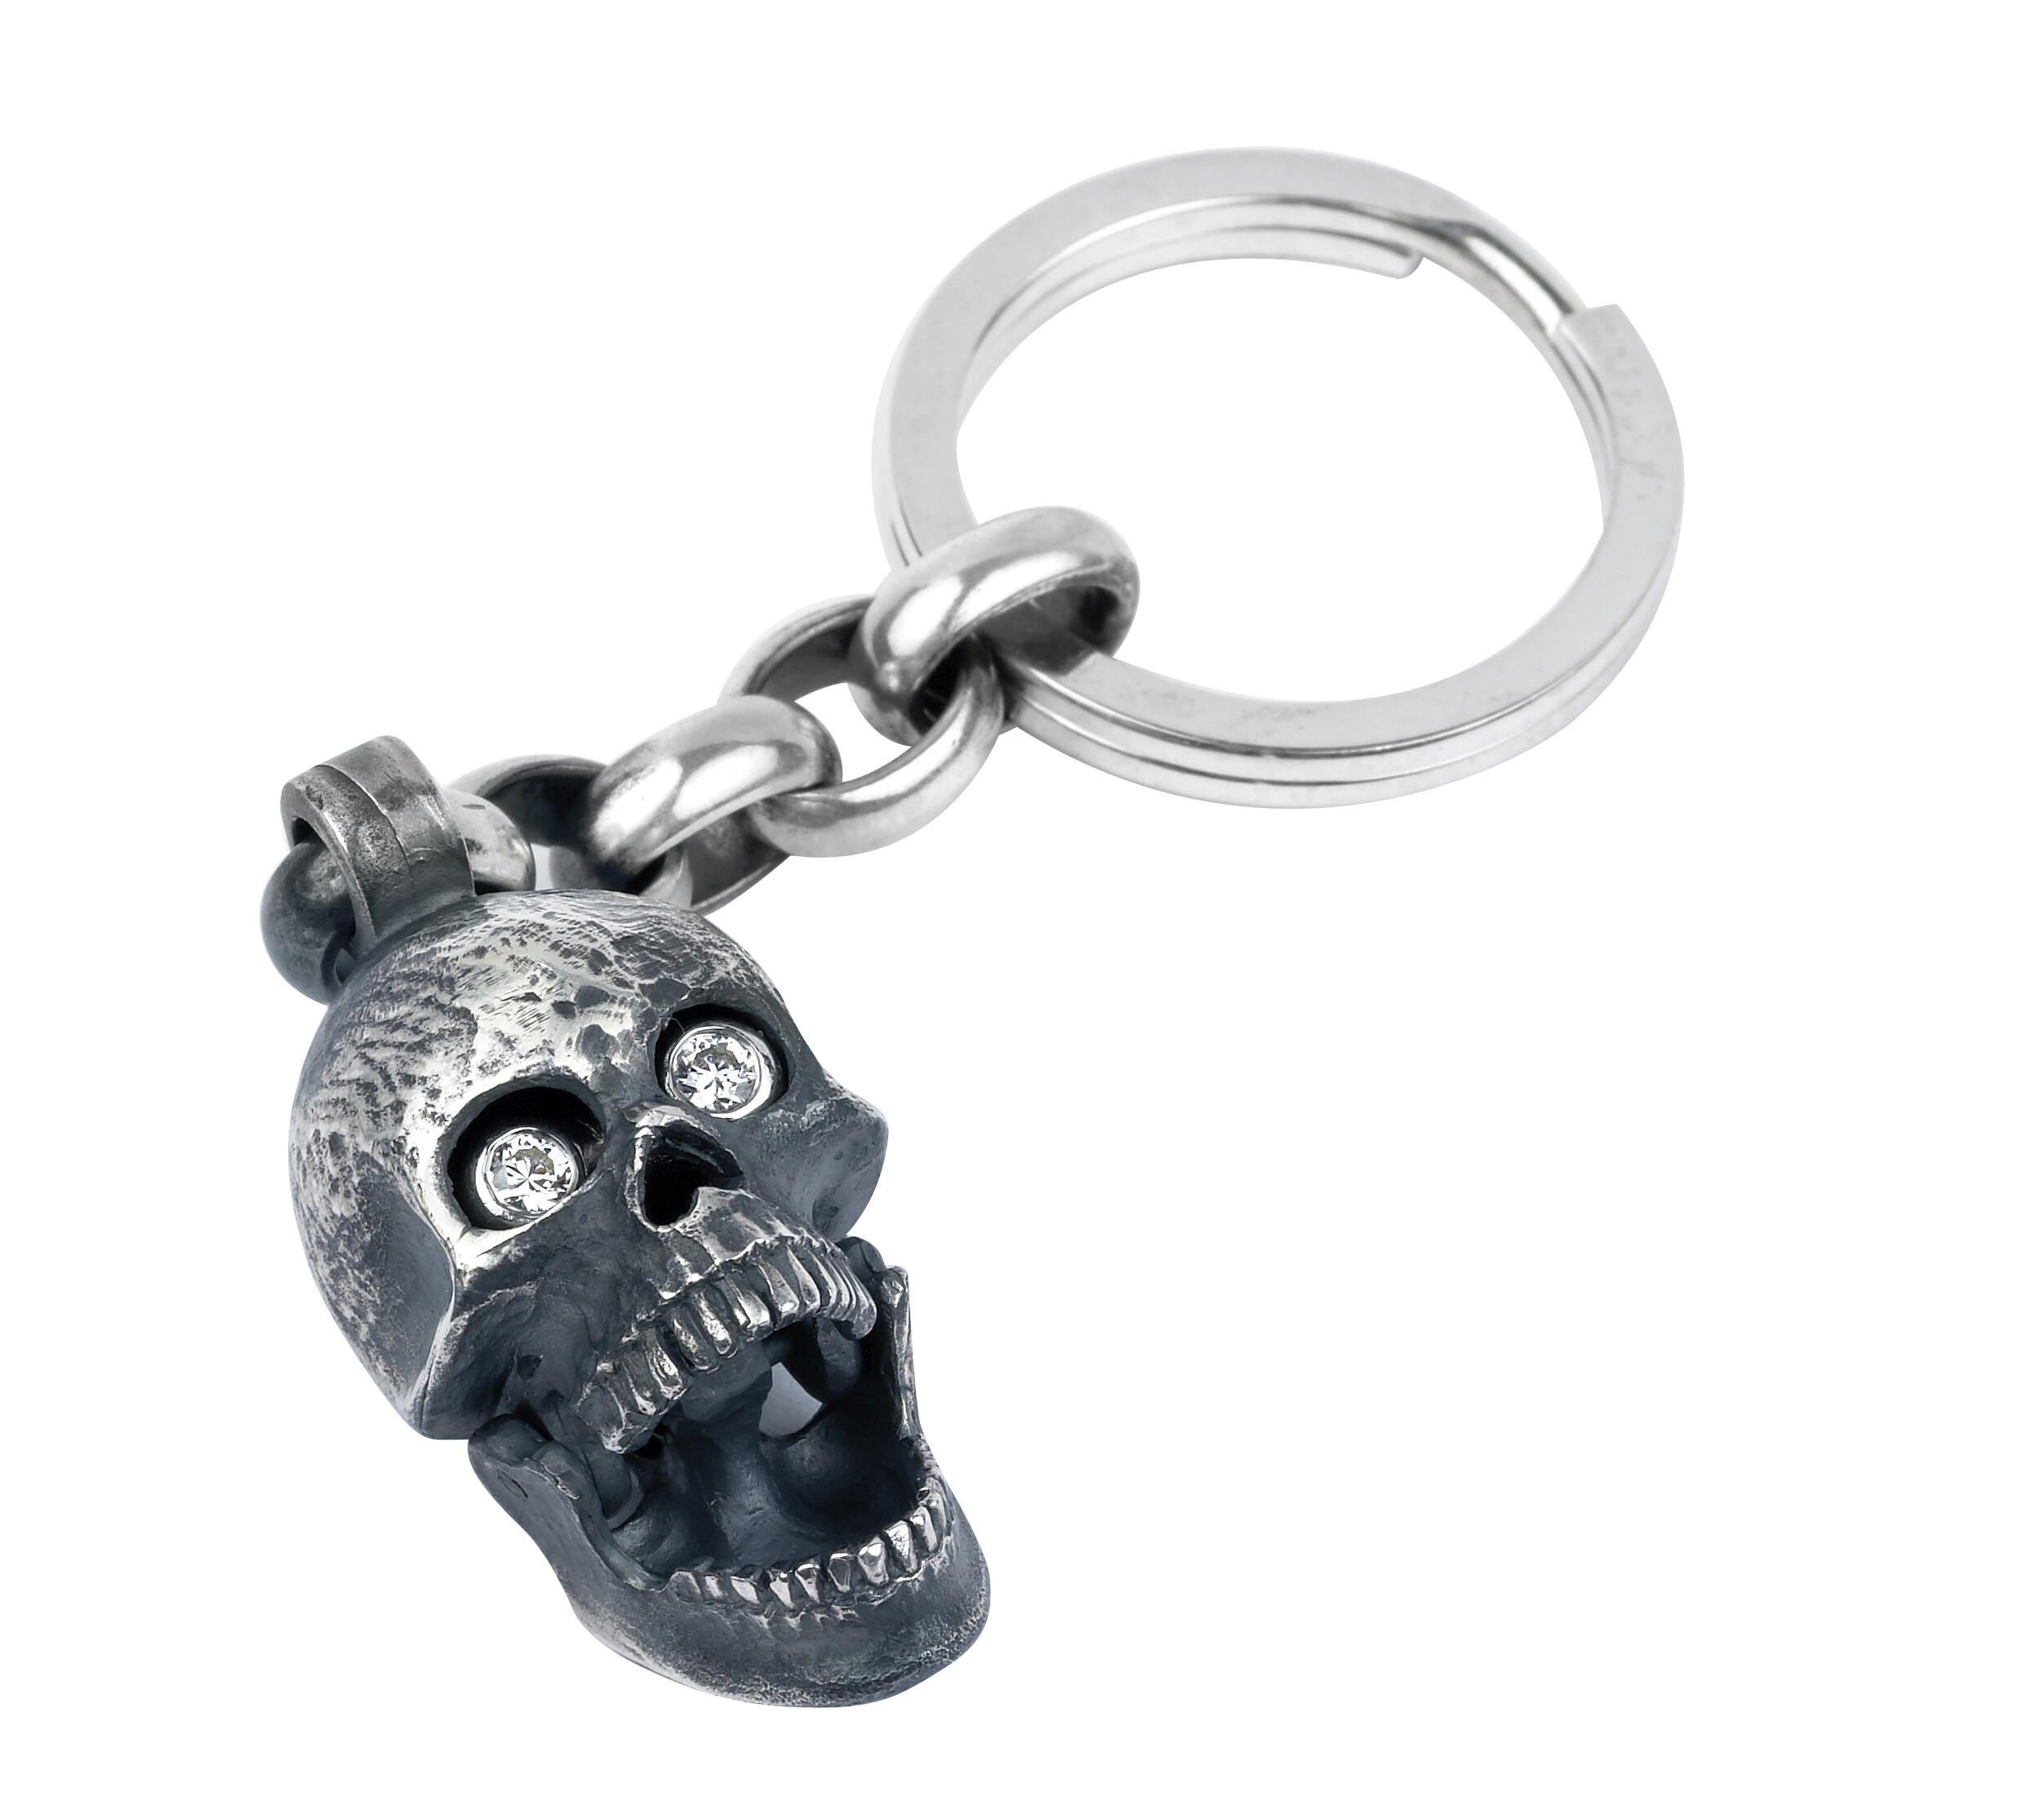 New Deakin & Francis Skull Key Ring